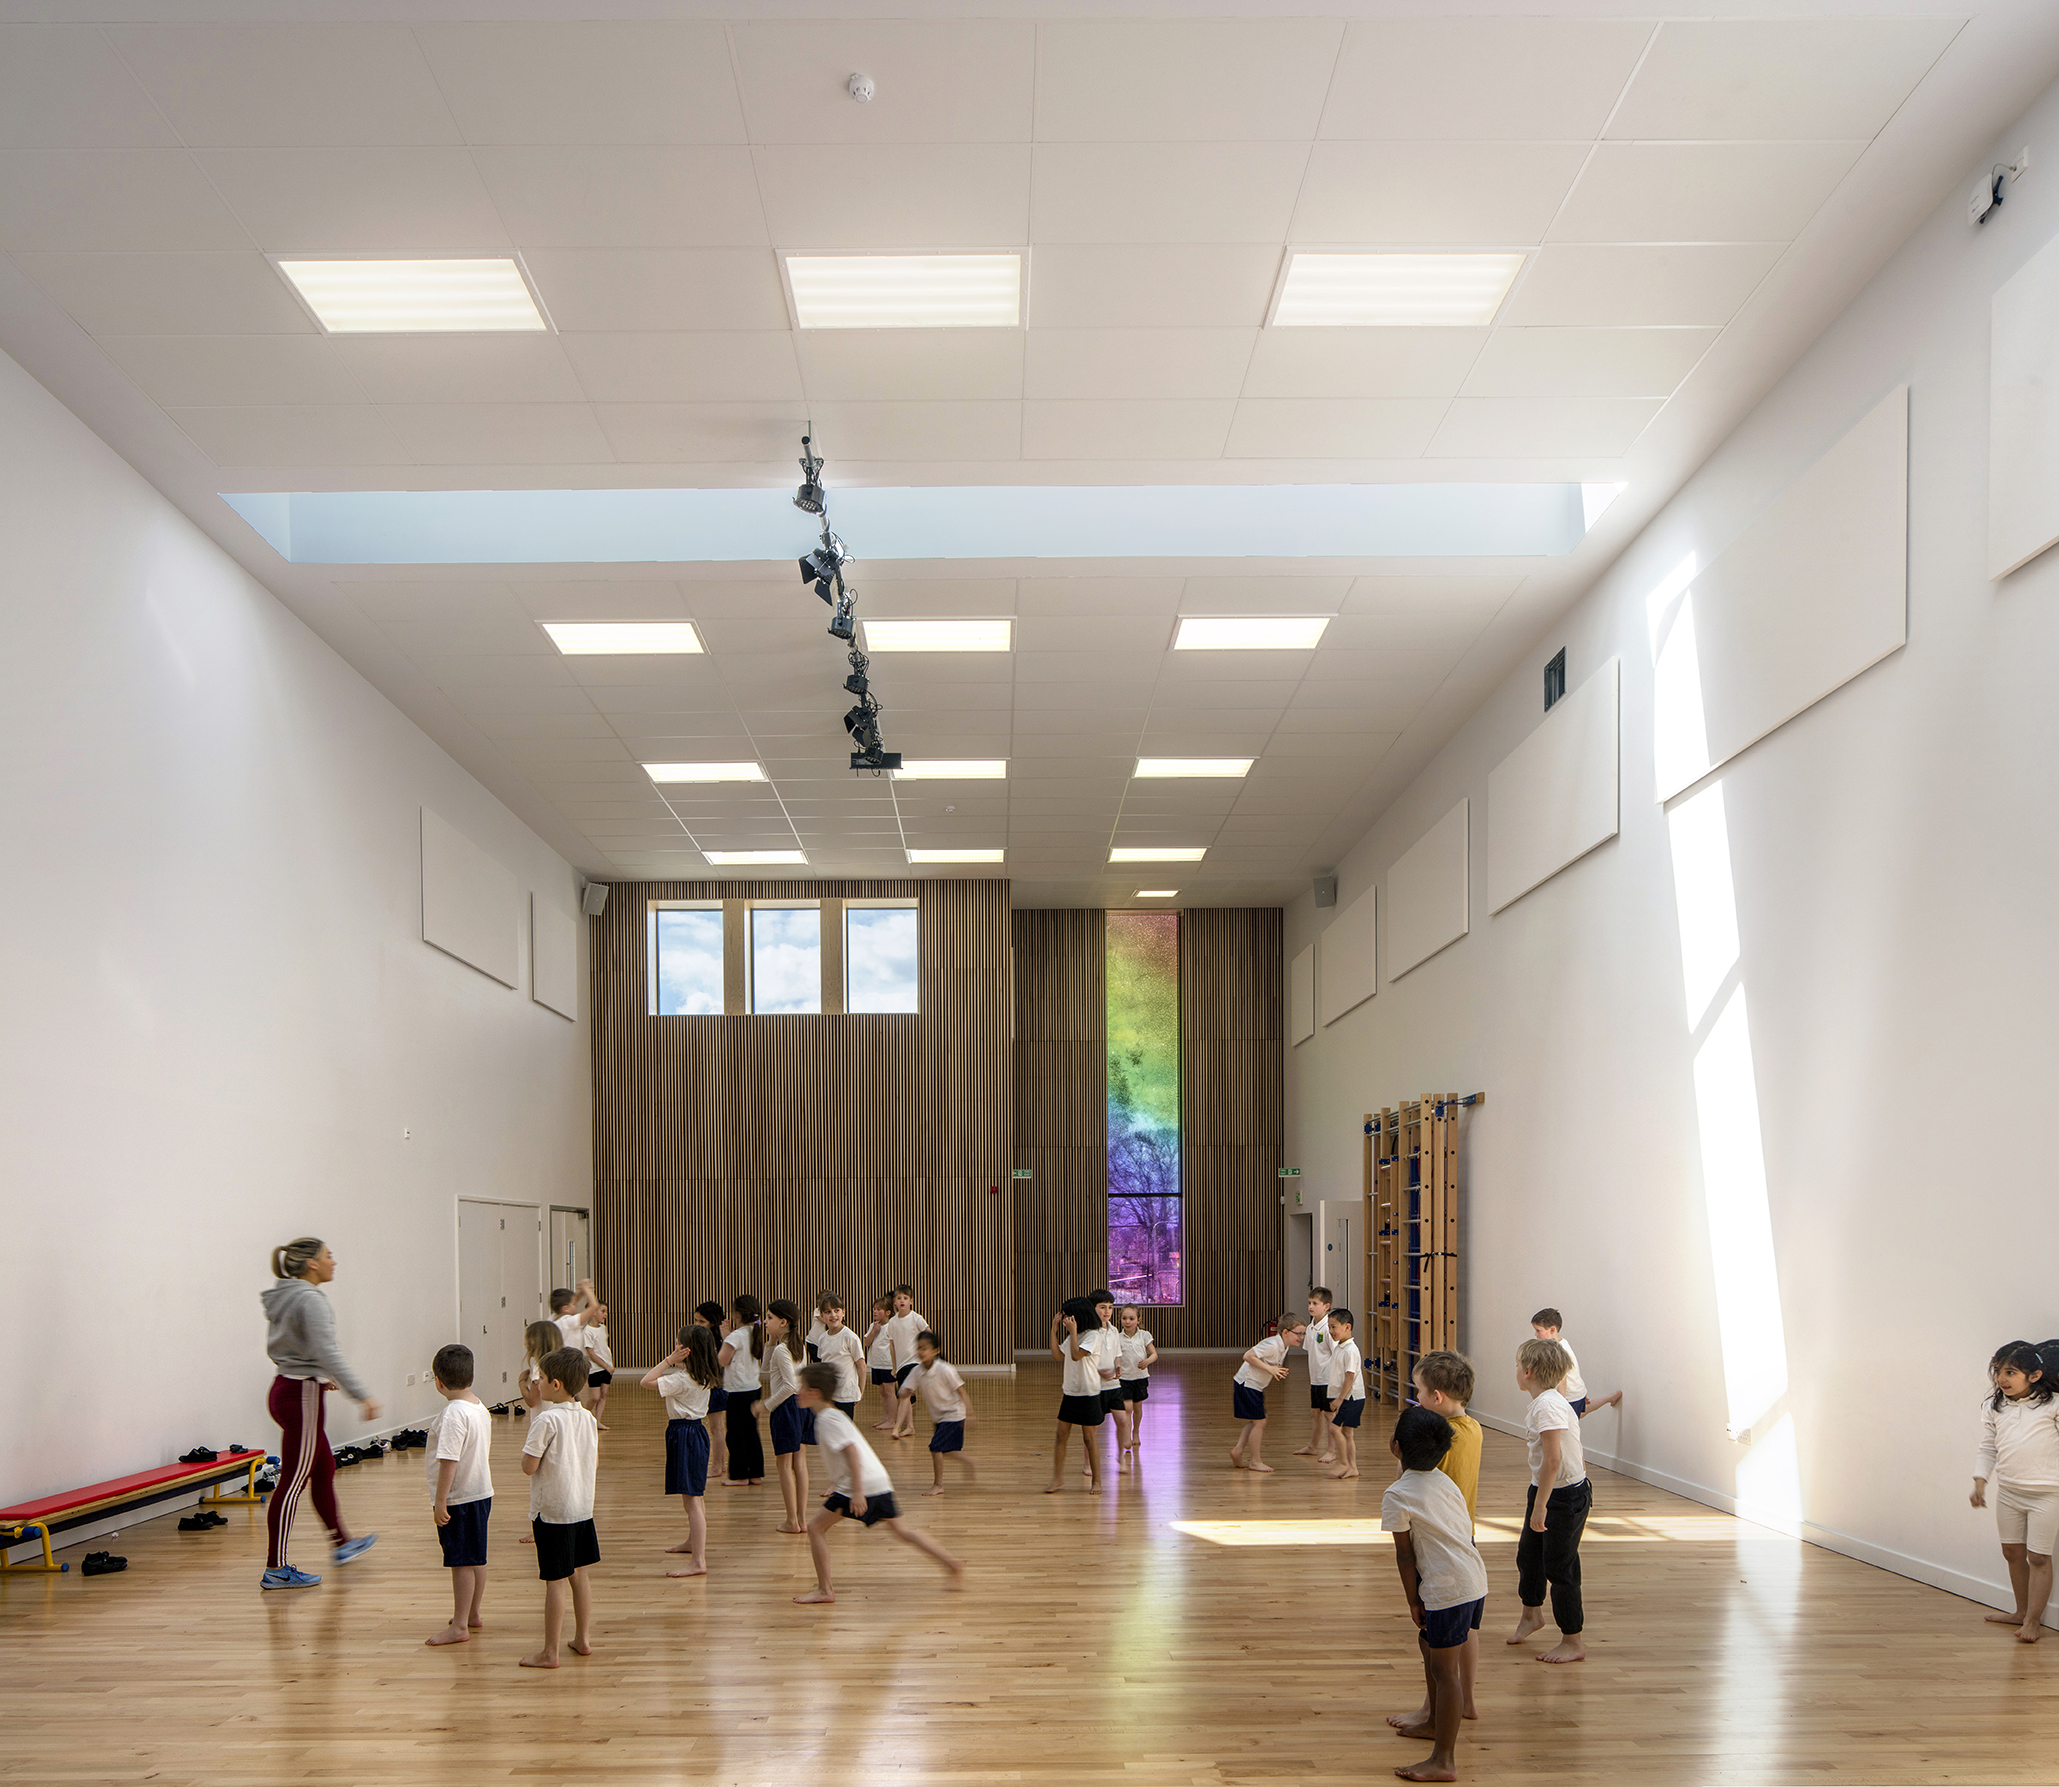 kids exercising indoors - University of Cambridge Primary School by Marks Barfield Architects